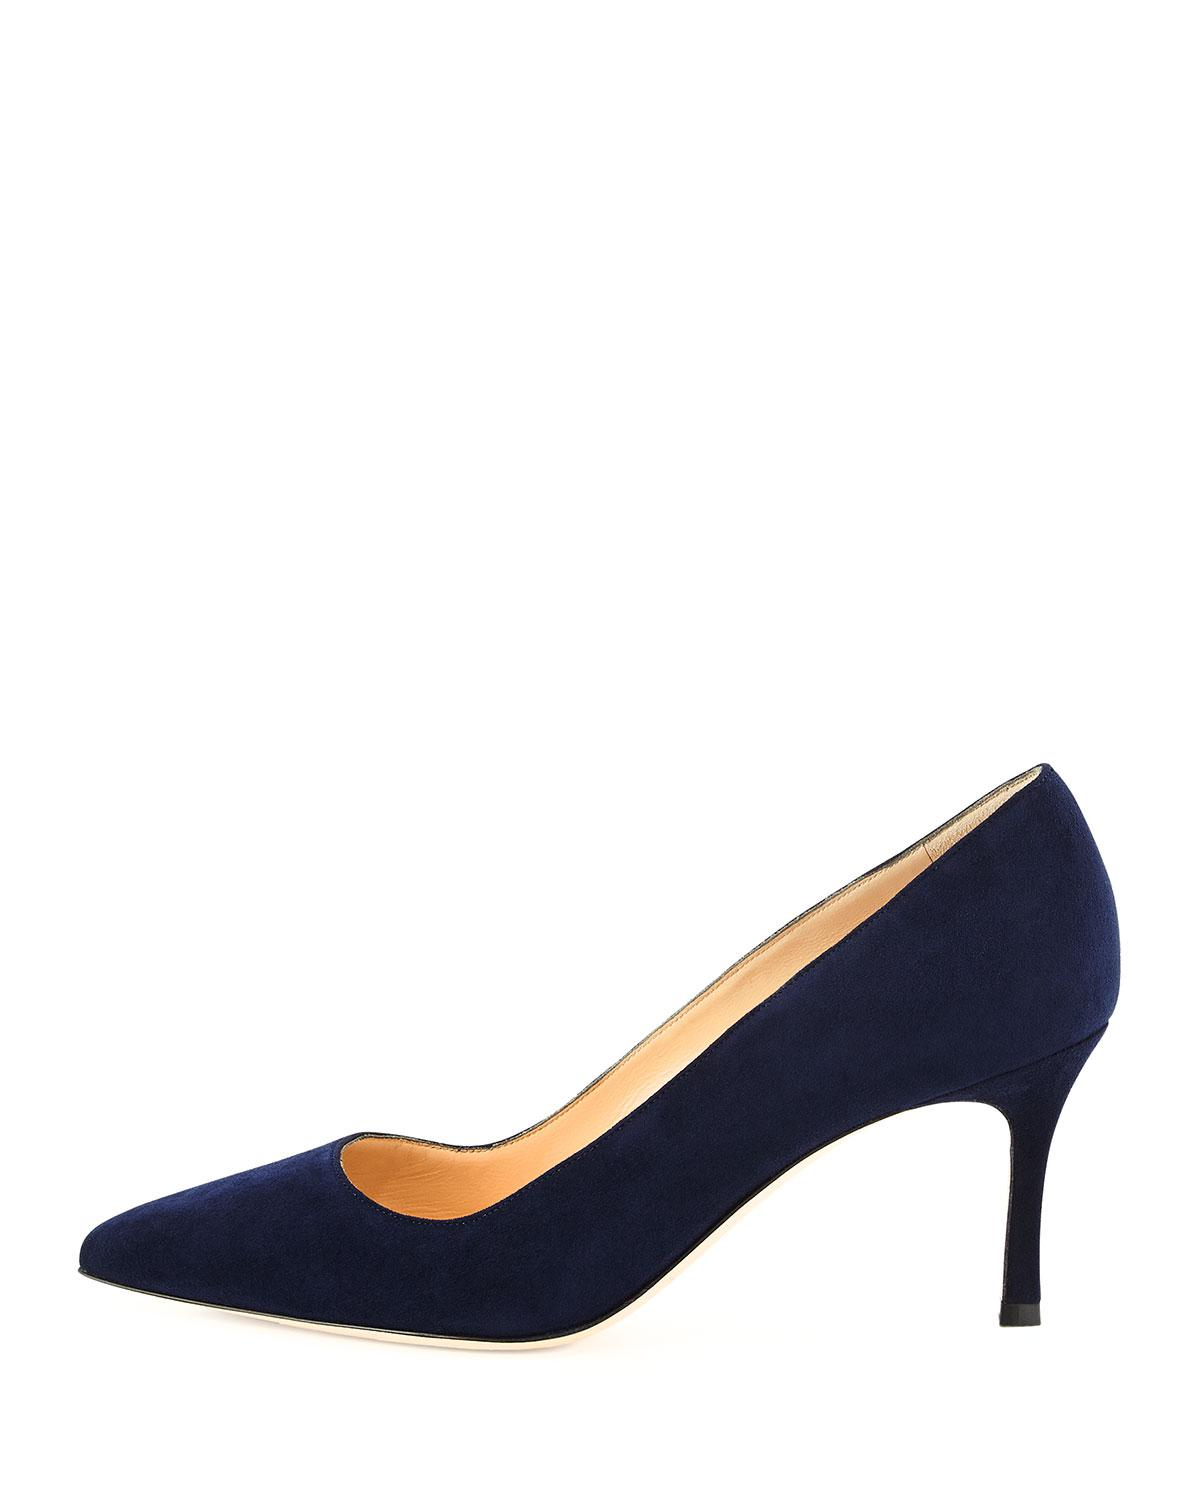 manolo blahnik bb patent 105mm pointed toe pump france for sale rh takeoutburger com